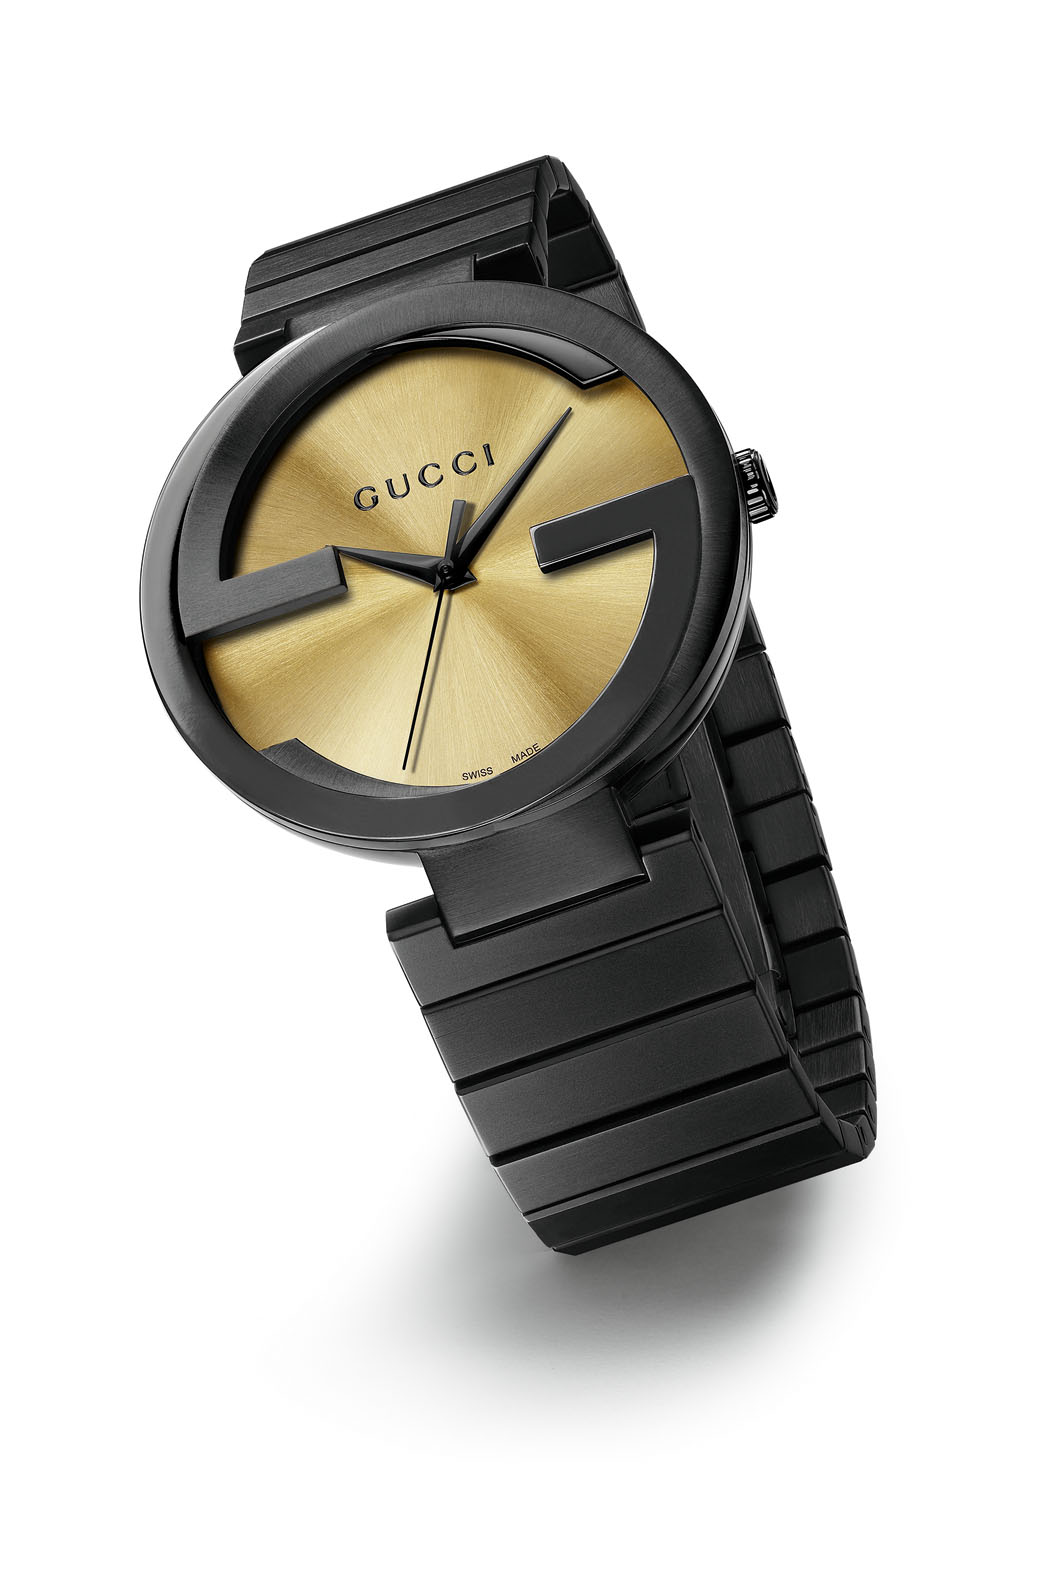 Gucci Grammy Watch Product Image - P 2014